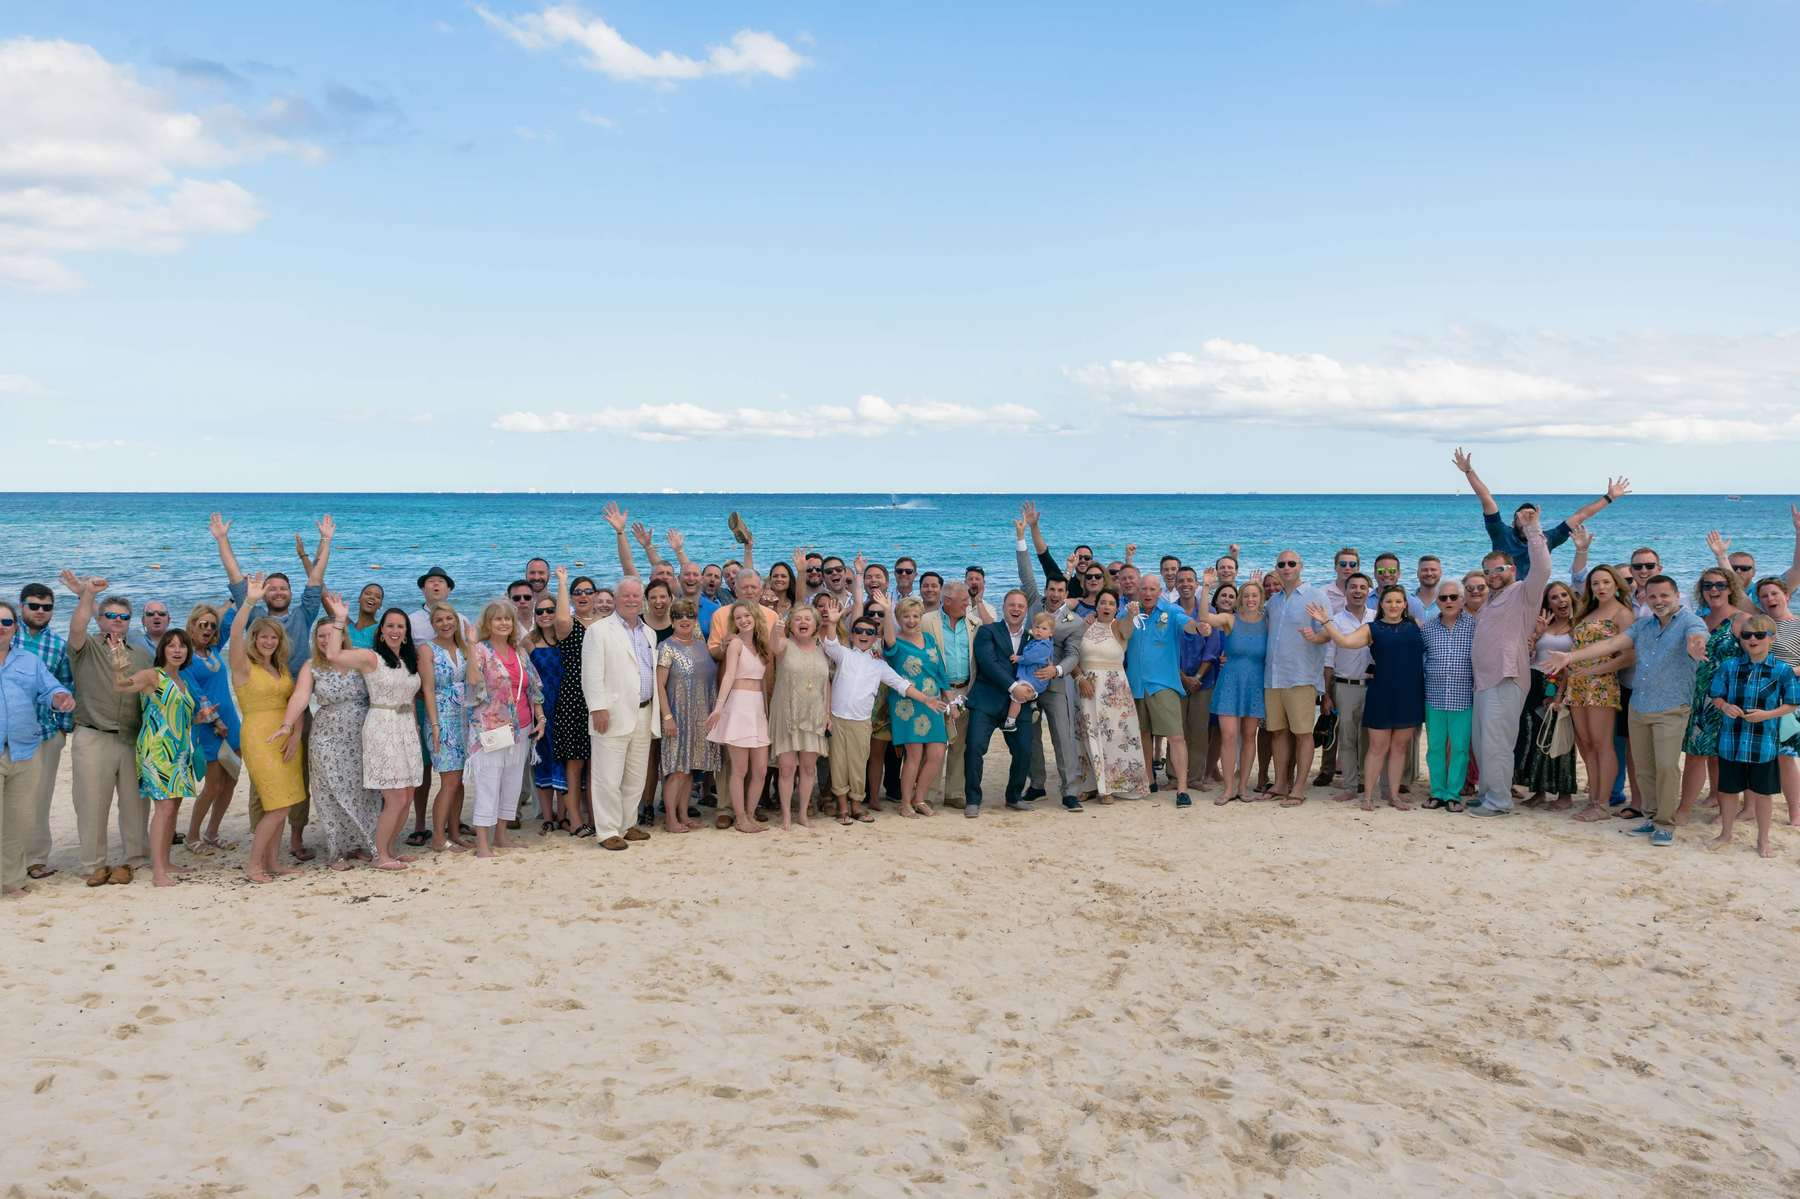 Friends gather on the beach to celebrate the new marriage after the ceremony.